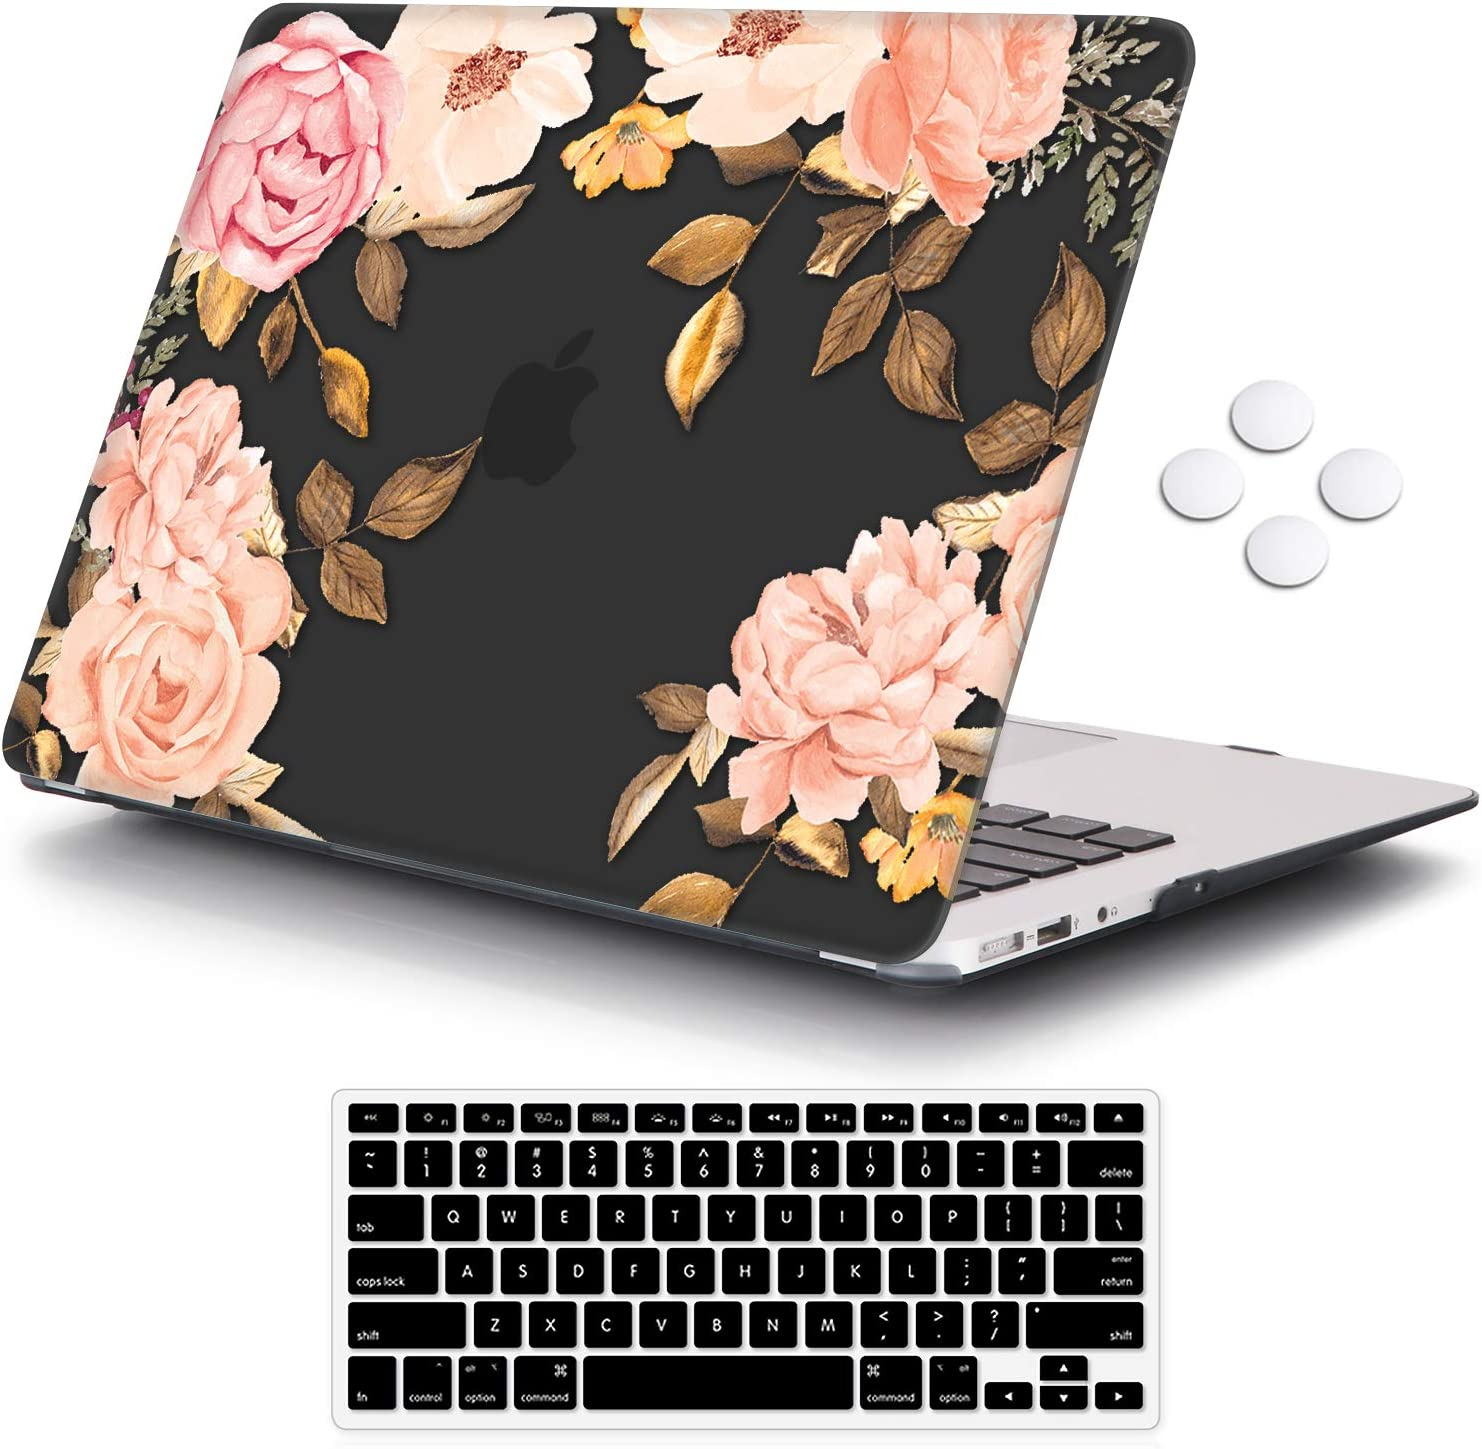 iCasso MacBook 12 Inch Case 2017 2016 2015 Release, Plastic Pattern Hard Shell with Keyboard Cover Compatible MacBook 12 Inch Retina Display Model A1534 - Watercolor Rose